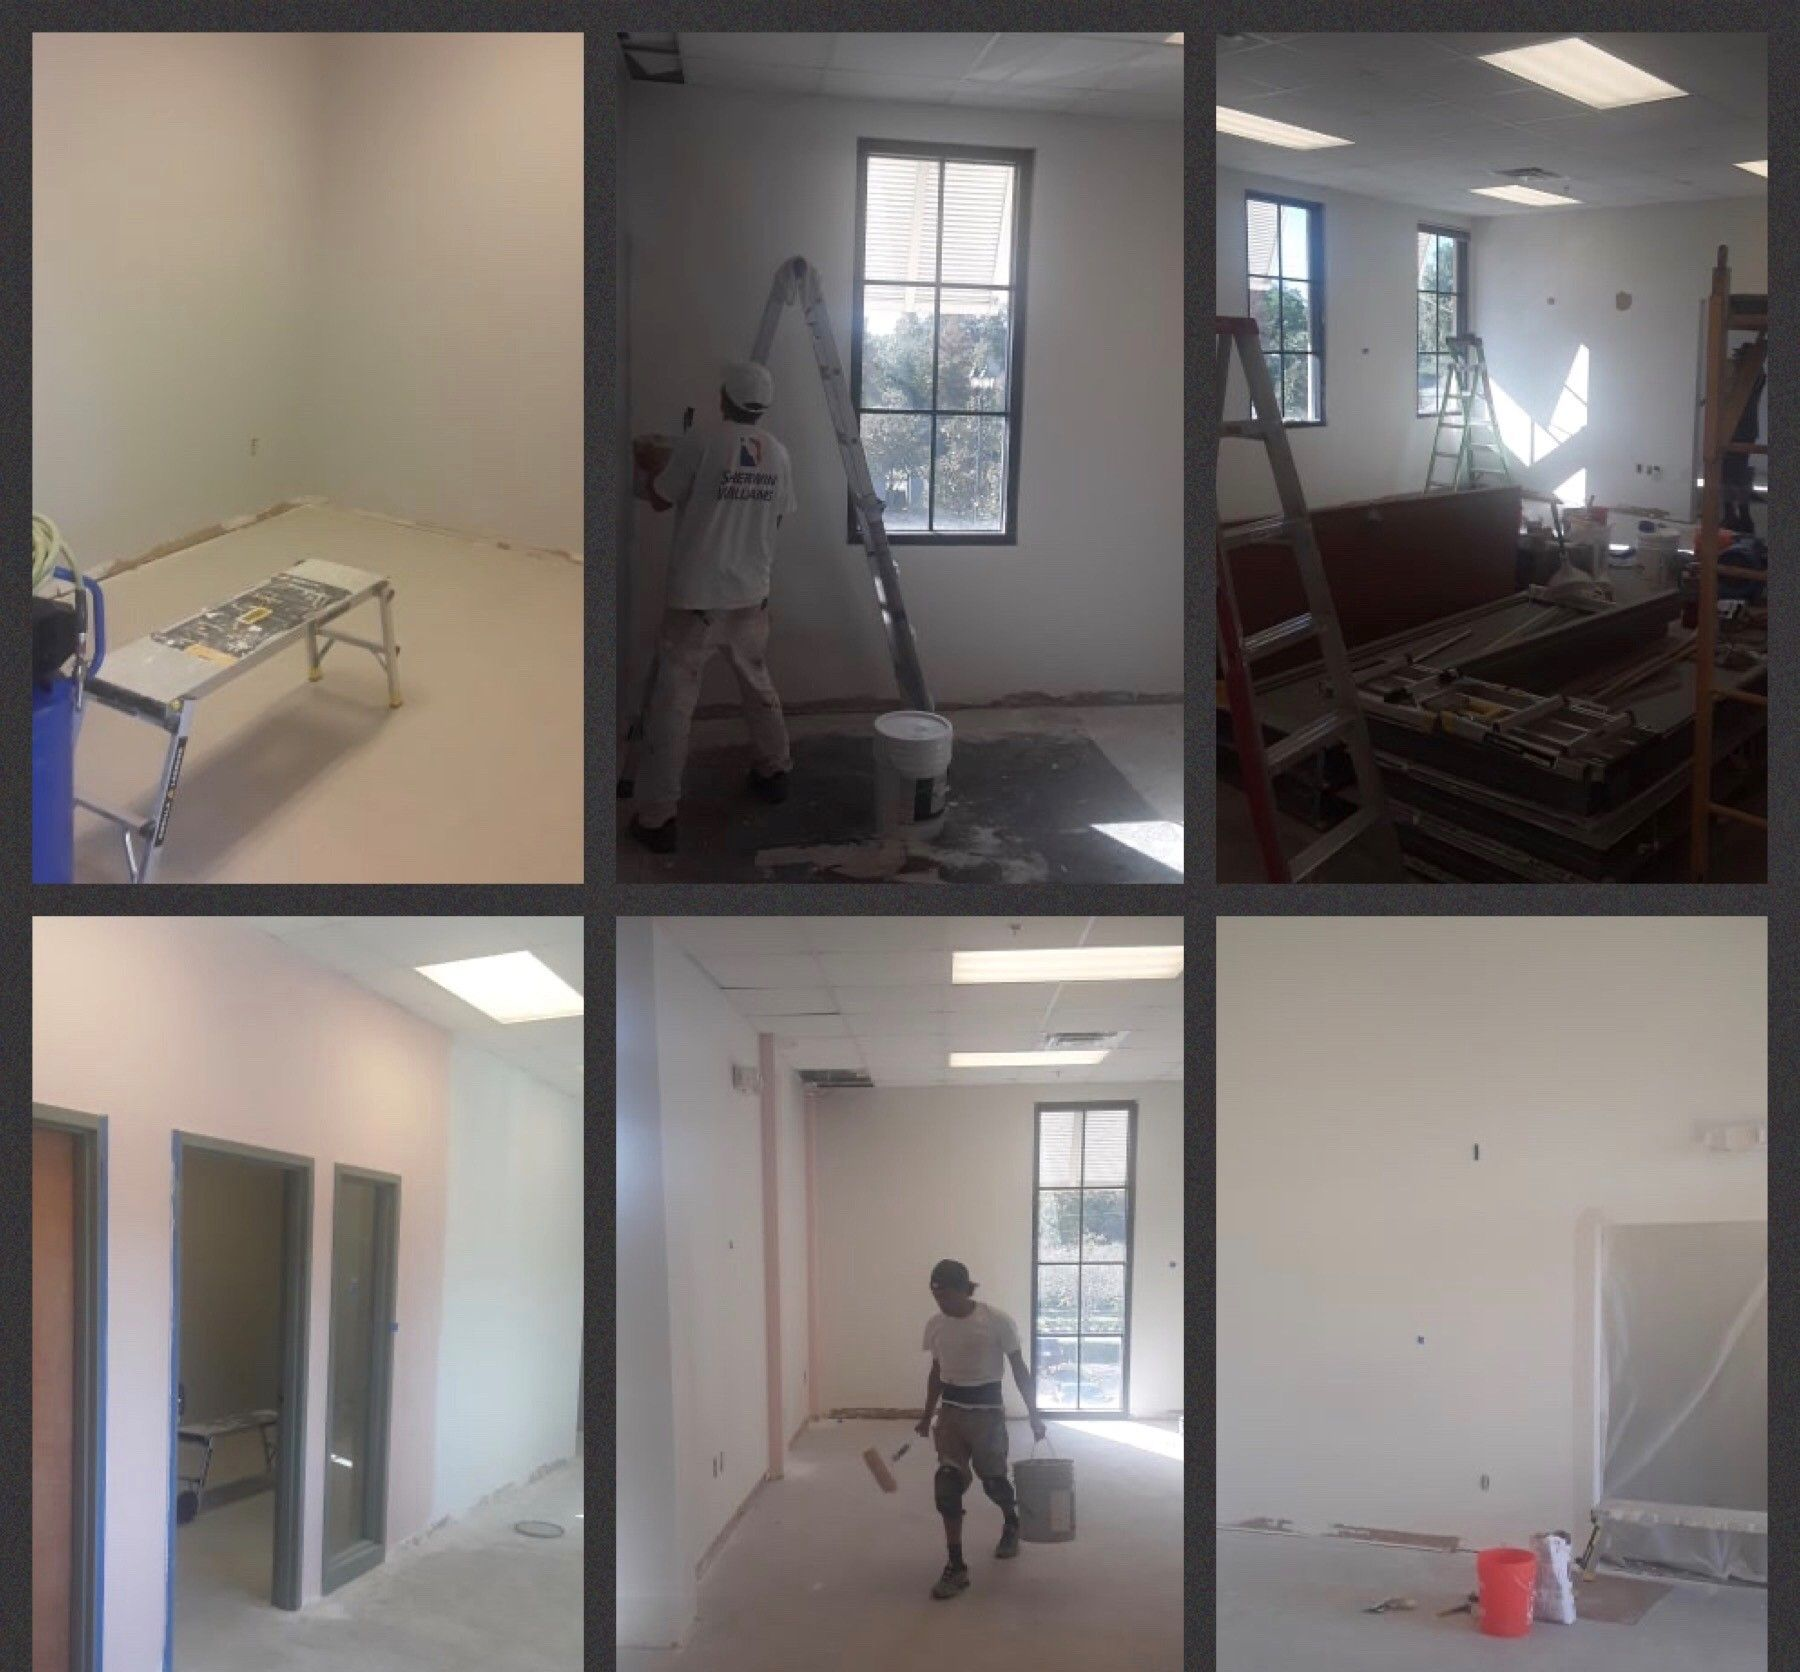 Our csg team has been busy with this ongoing construction